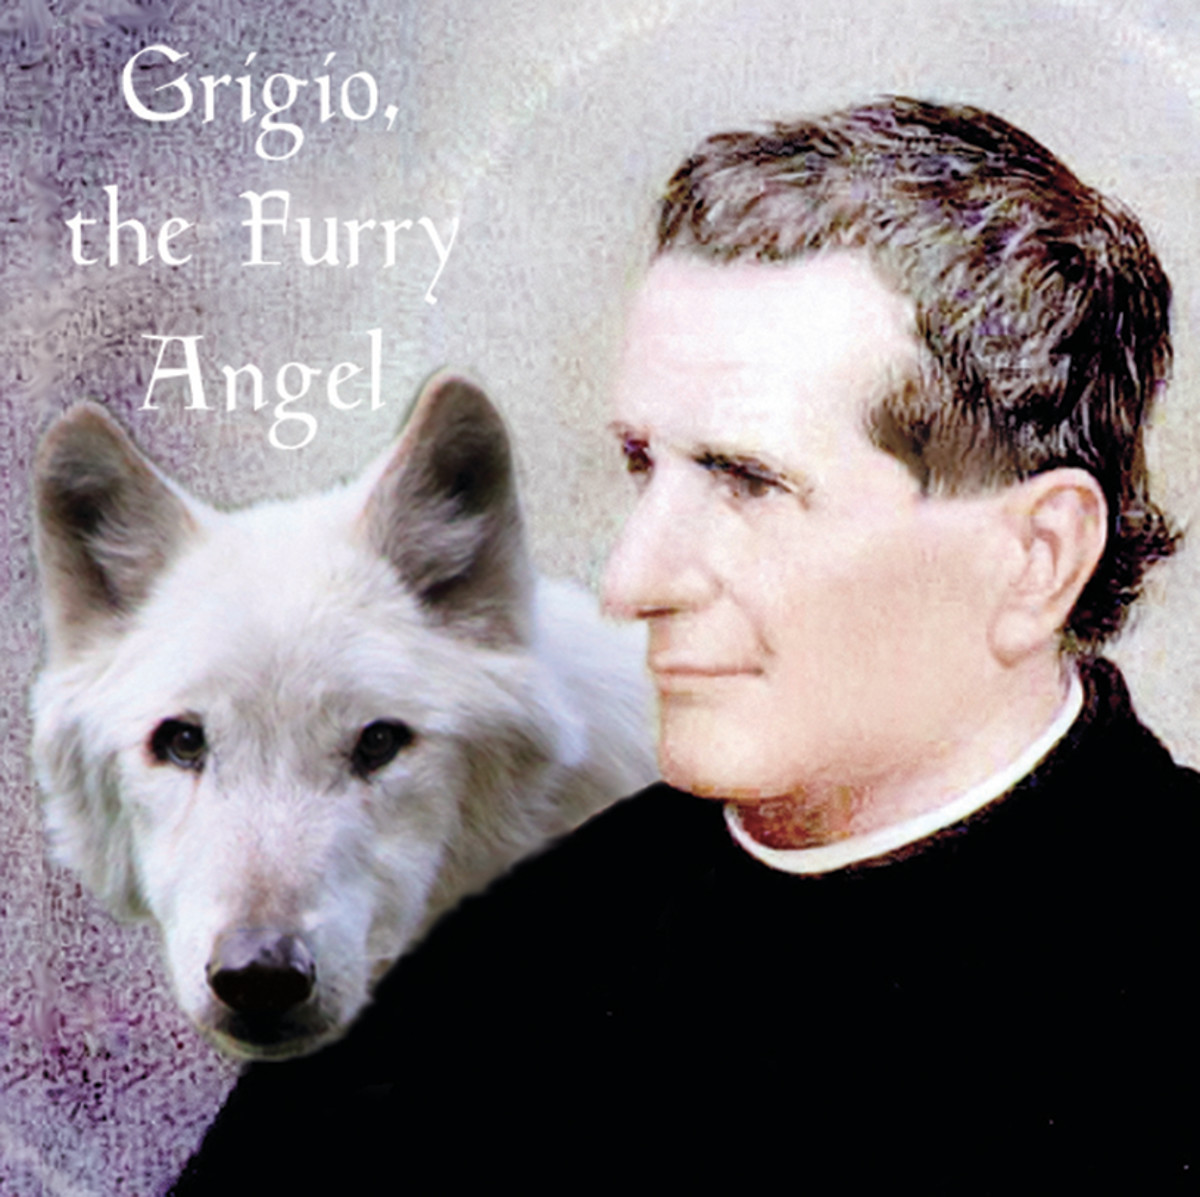 Don Bosco with his mysterious dog.